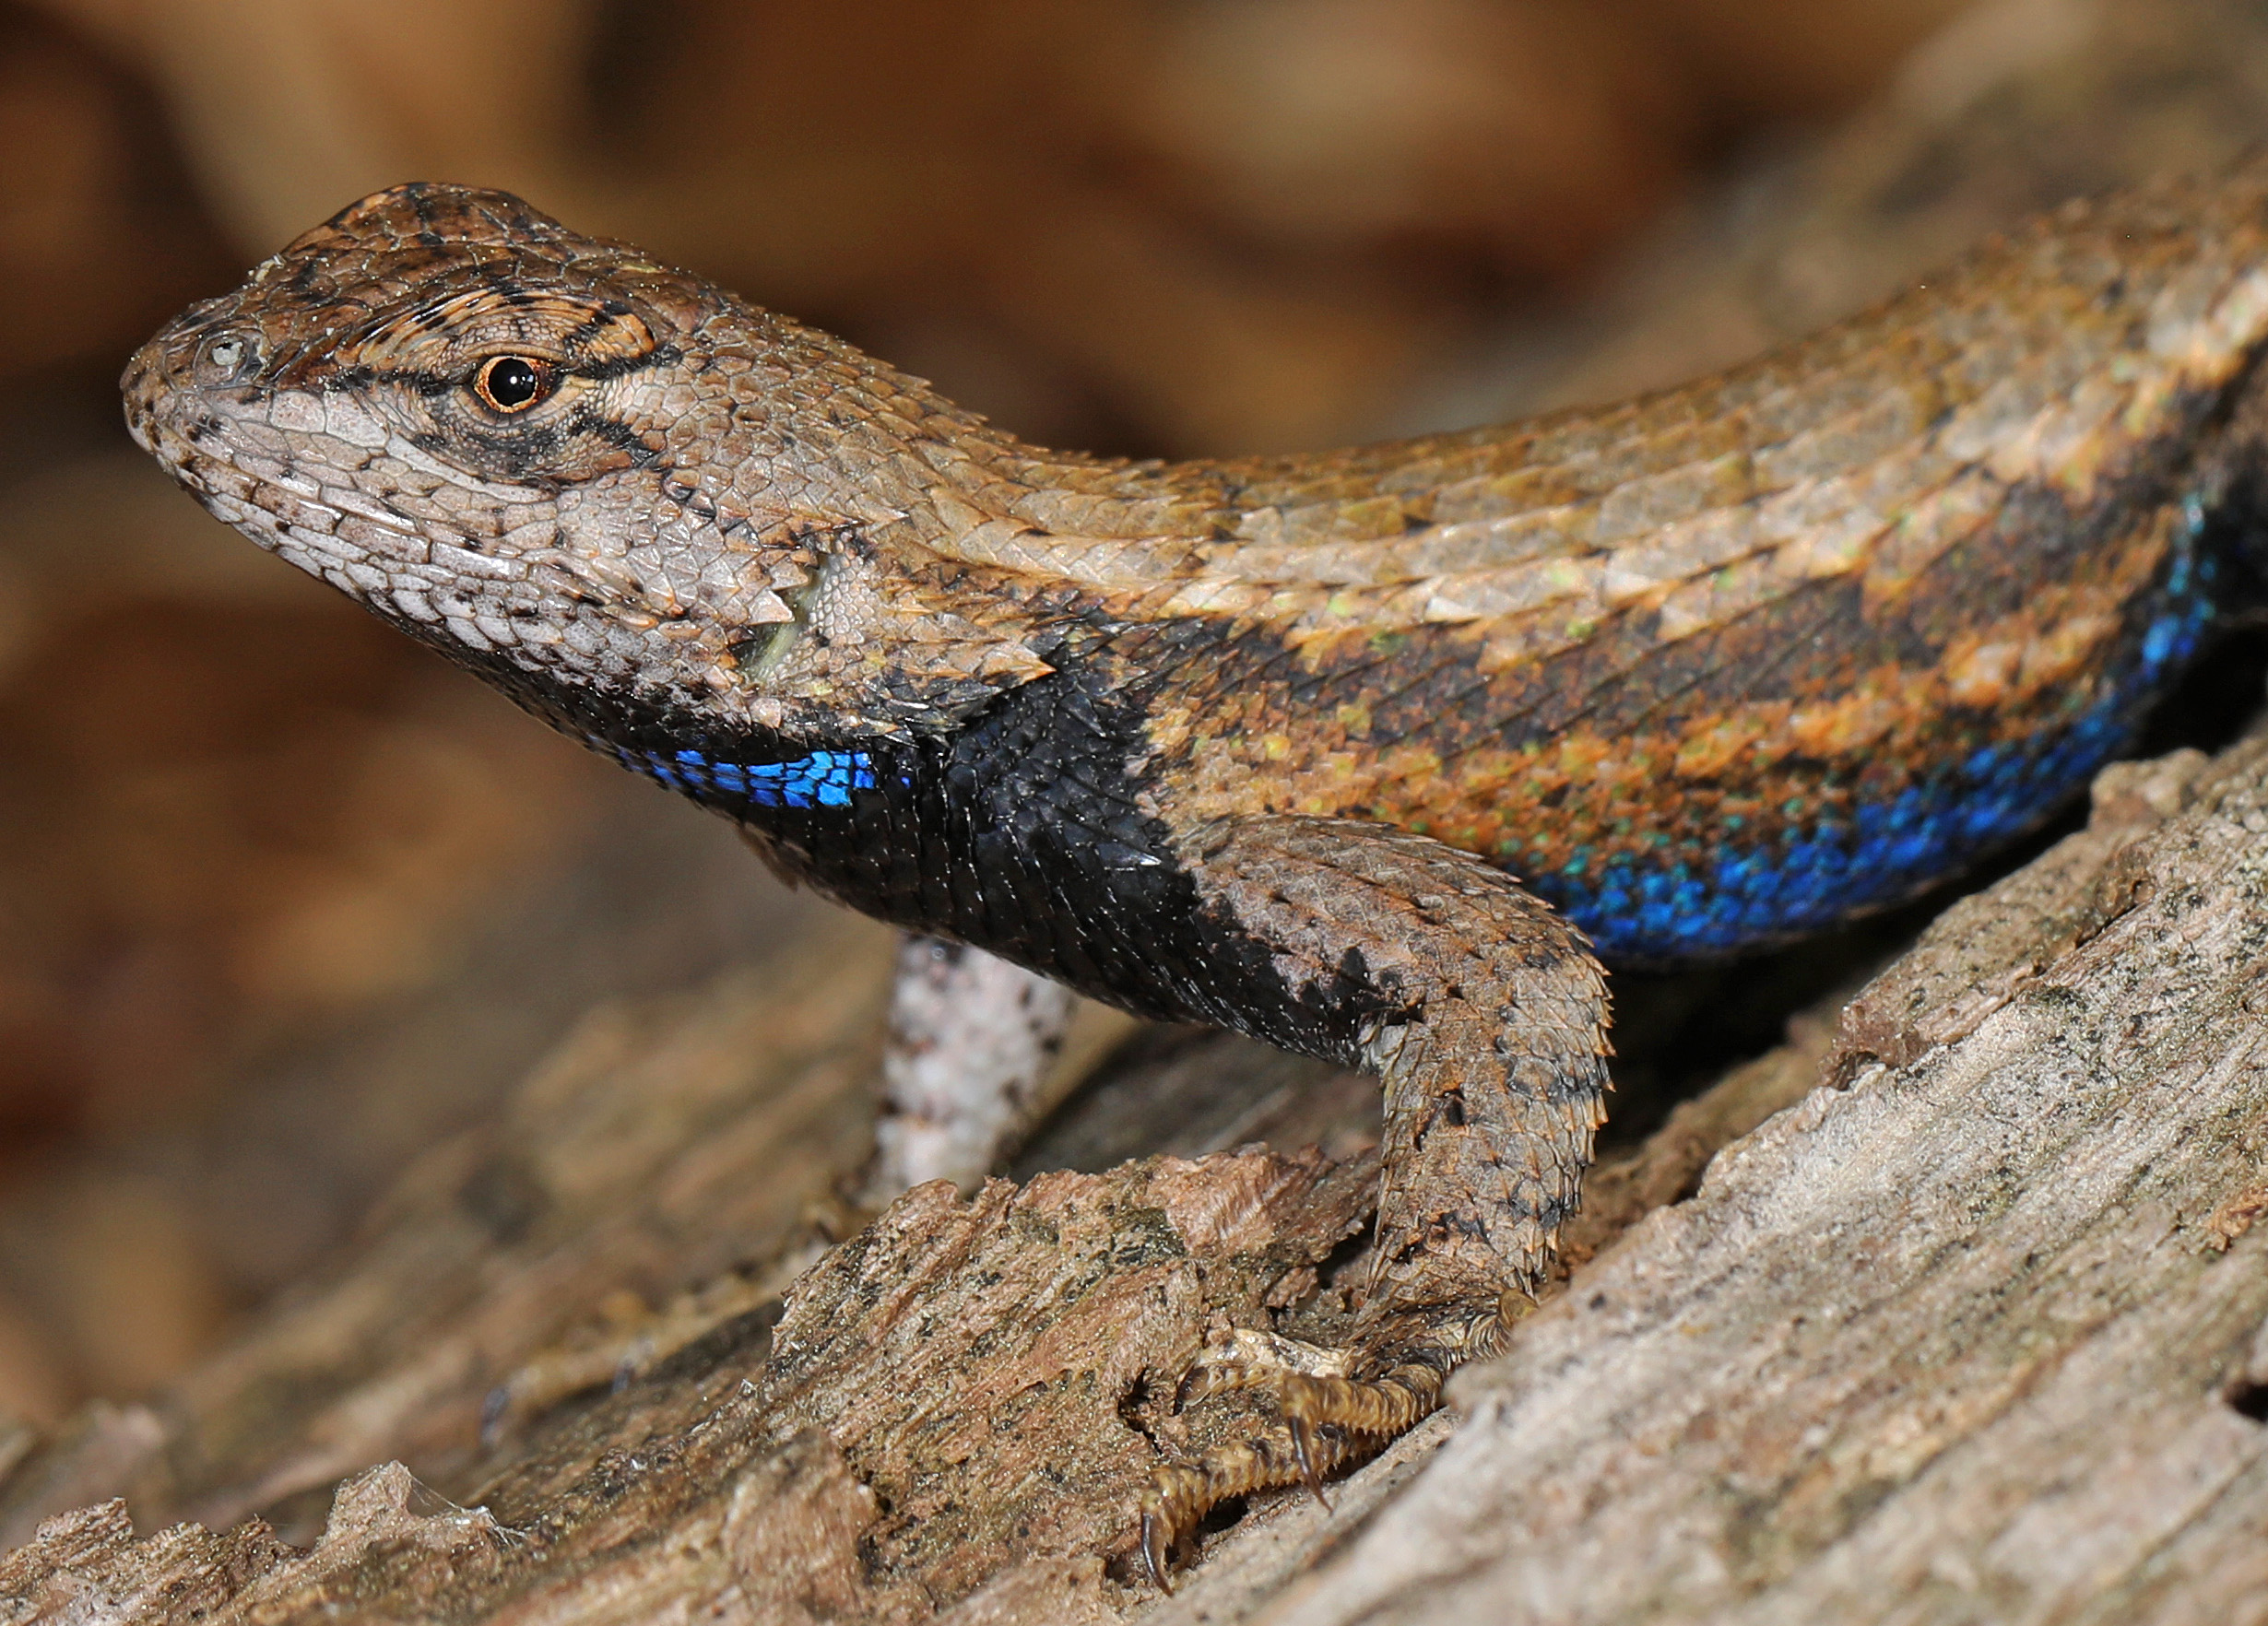 Eastern Fence Lizard (Sceloporus undulatus) head and torso, showing the bright, iridescent blue scales on its belly. Photo courtesy flickr user Judy Gallagher.